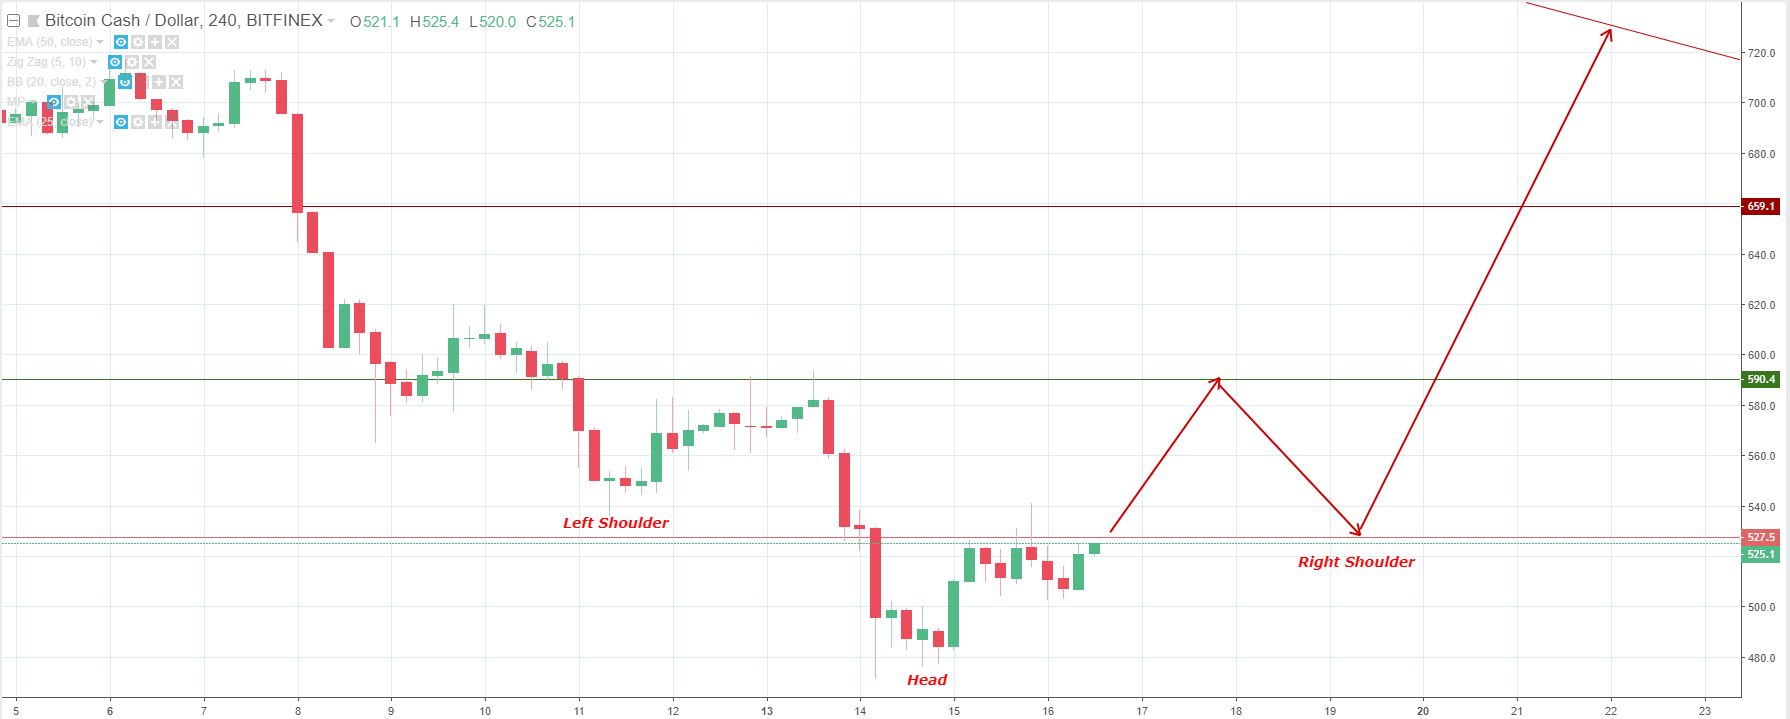 Bitcoin price, Bitcoin Cash price, Bitcoin price analysis, Bitcoin Cash price analysis, Bitcoin price forecast, Bitcoin Cash price analysis, USD, cryptocurrency, major cryptocurrencies, top 10 cryptoc